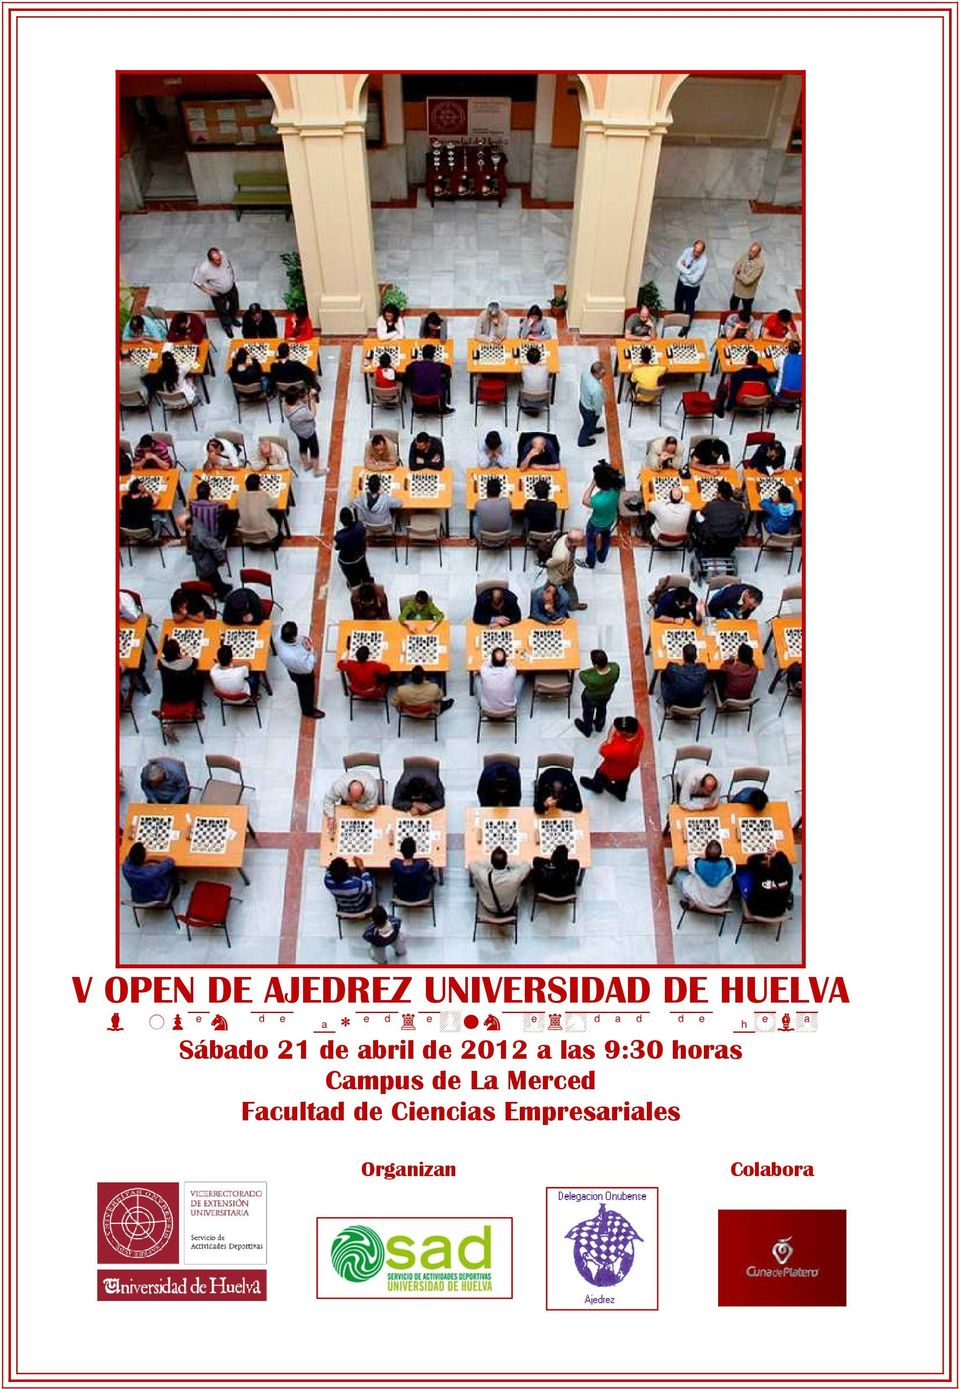 horas Campus de La Merced Facultad de